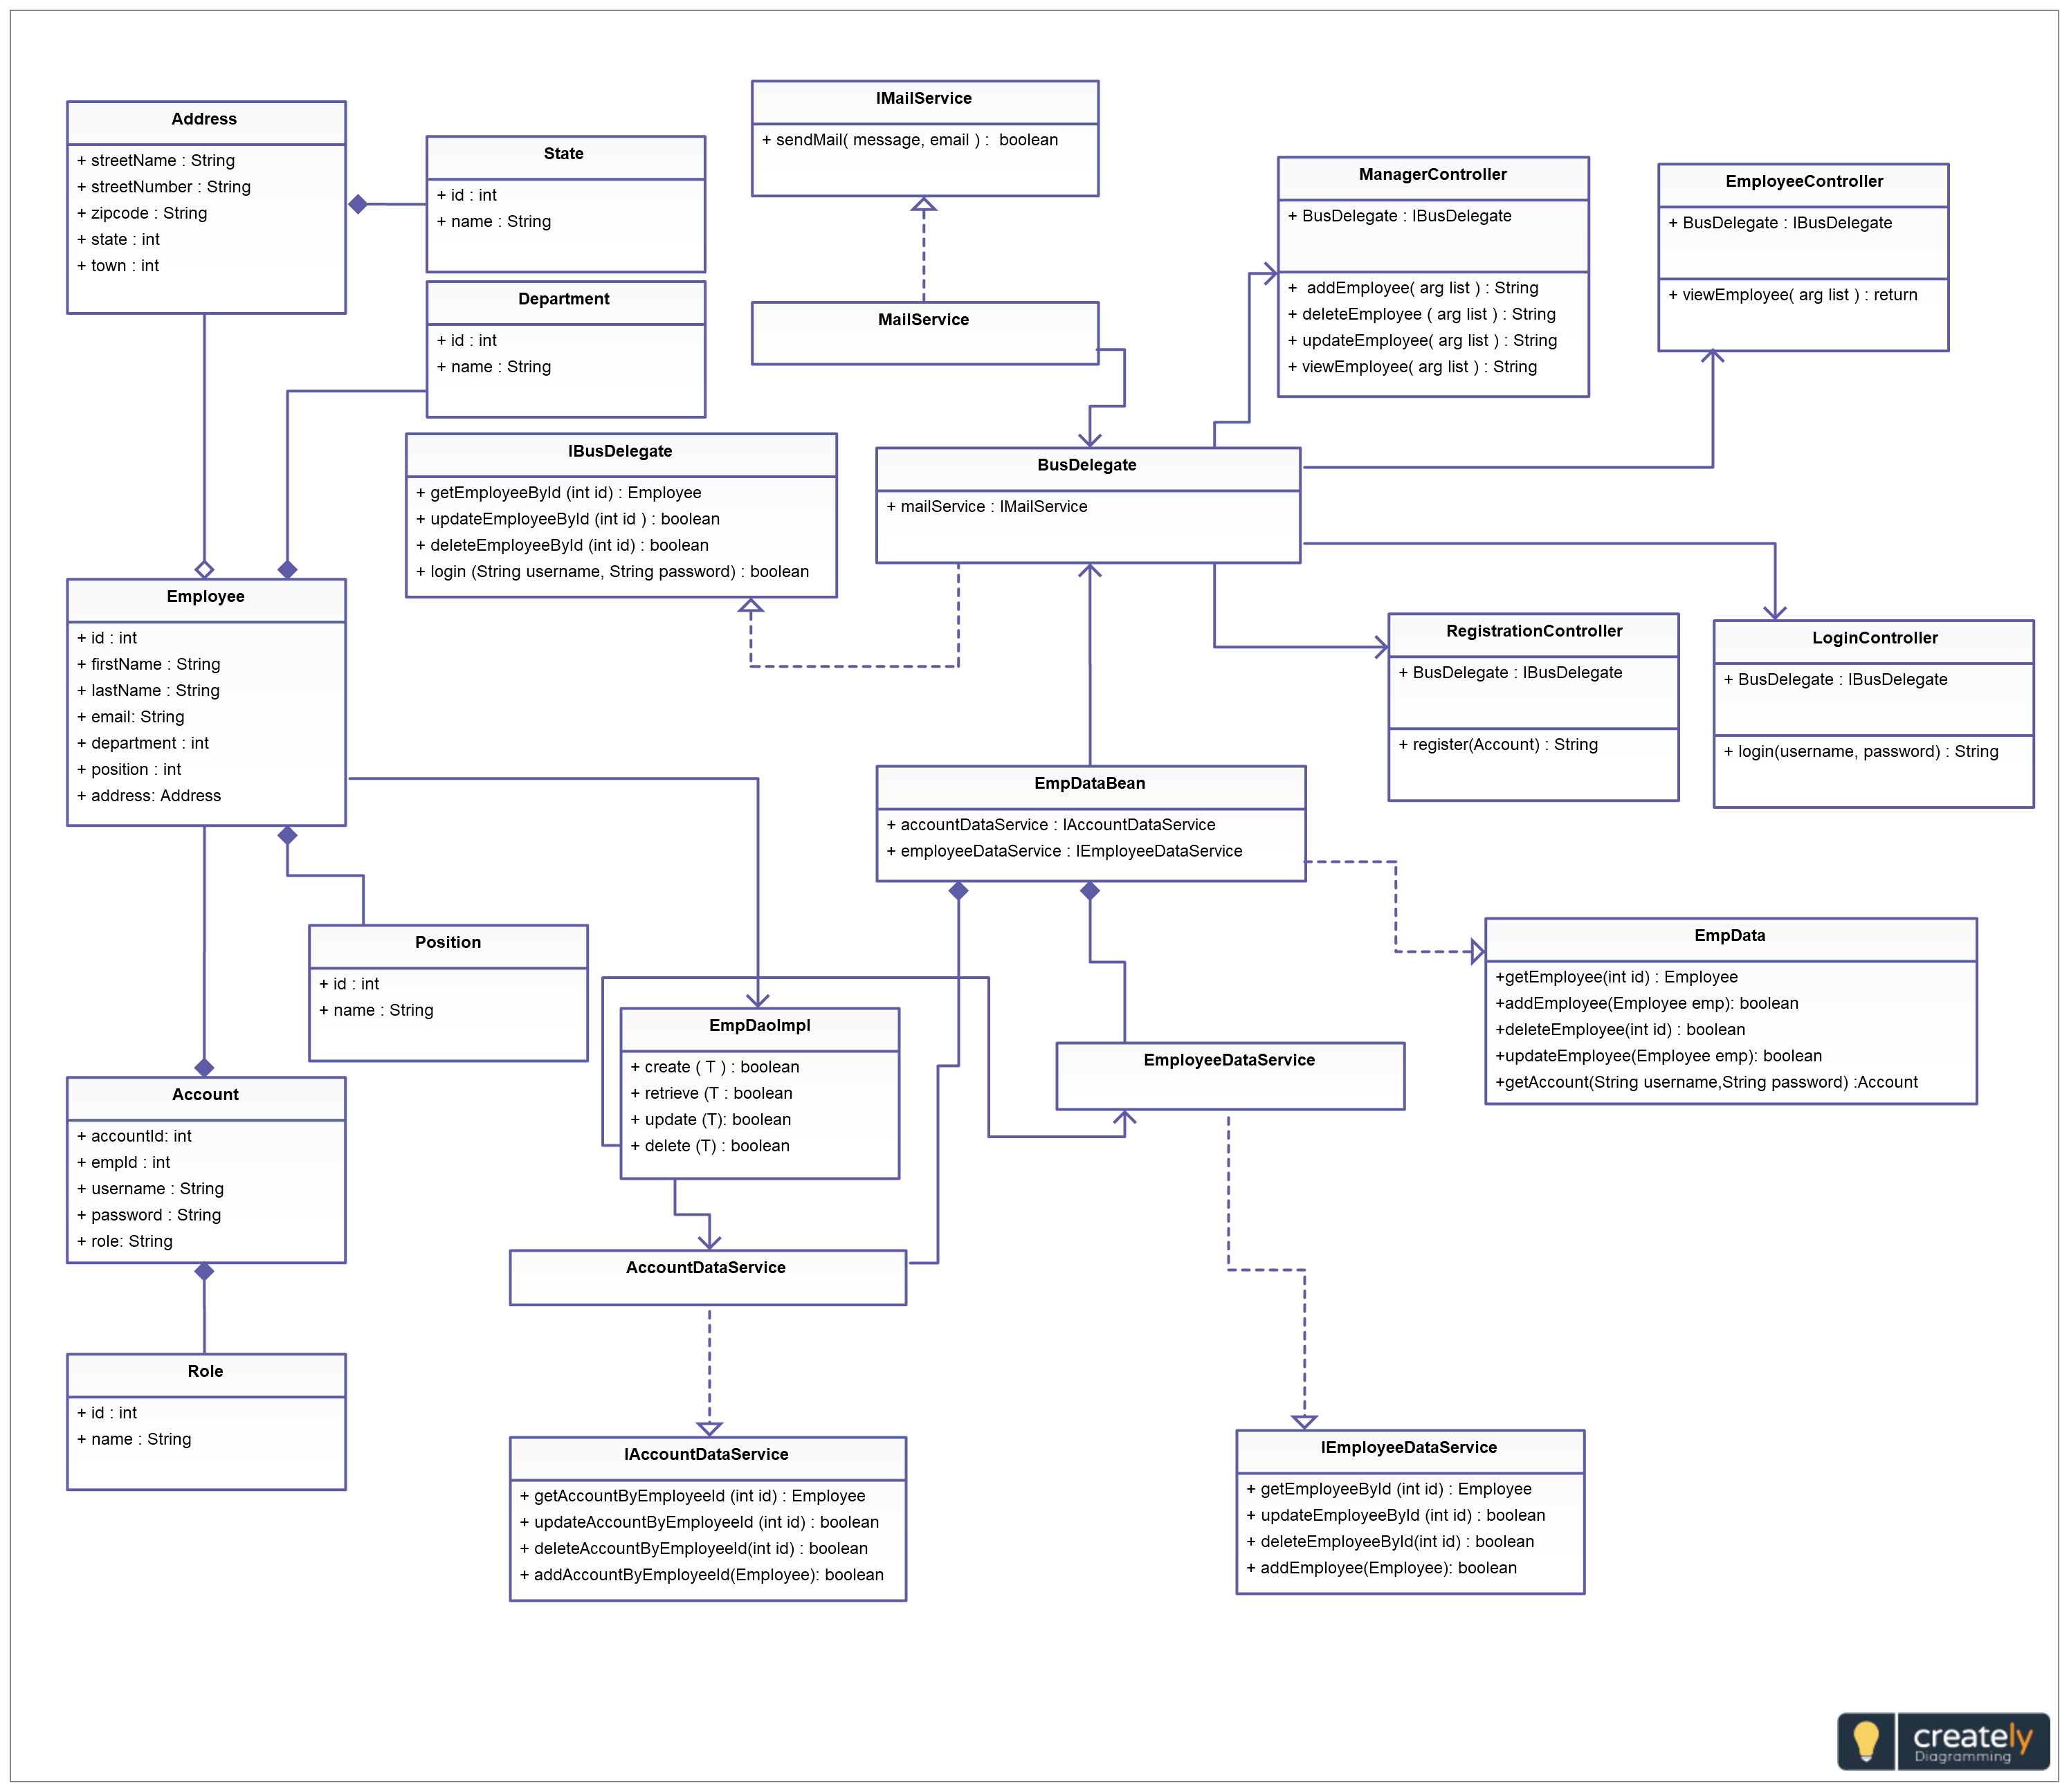 click on the example to edit online and download as an image class classdiagram uml umlclass employee management system software apps [ 2990 x 2590 Pixel ]